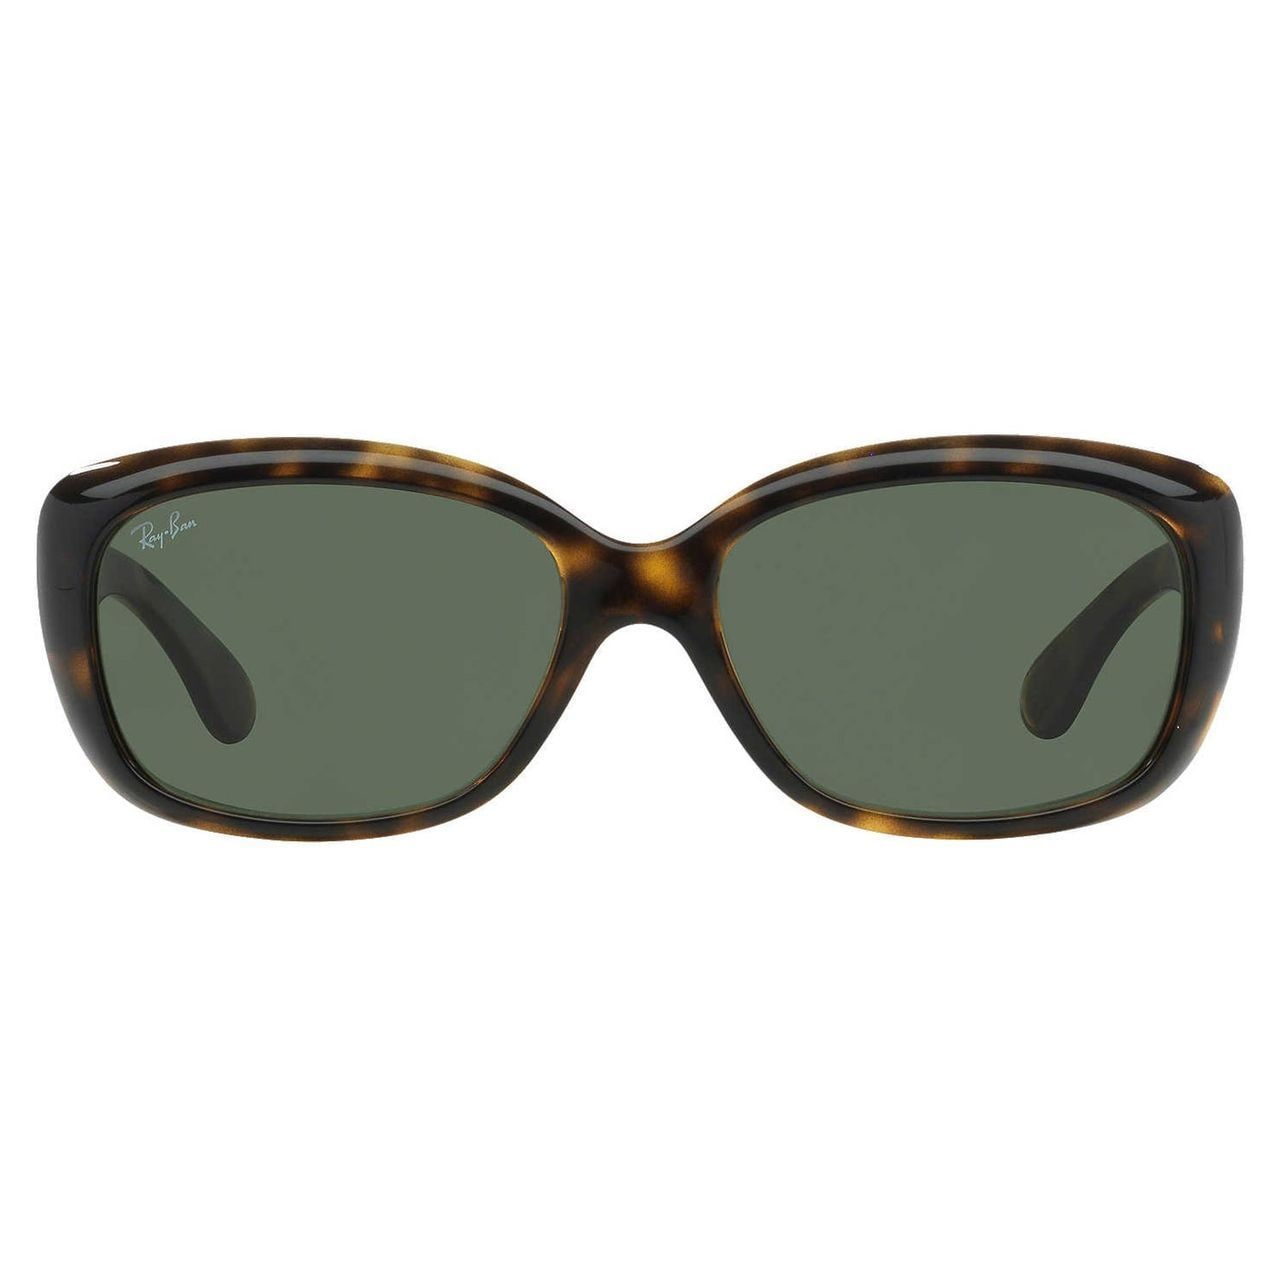 8e3917b8a34 Shop Ray-Ban G-15XLT  Jackie Oh  Sunglasses - 58mm - Tortoise - Large -  Free Shipping Today - Overstock.com - 10161521